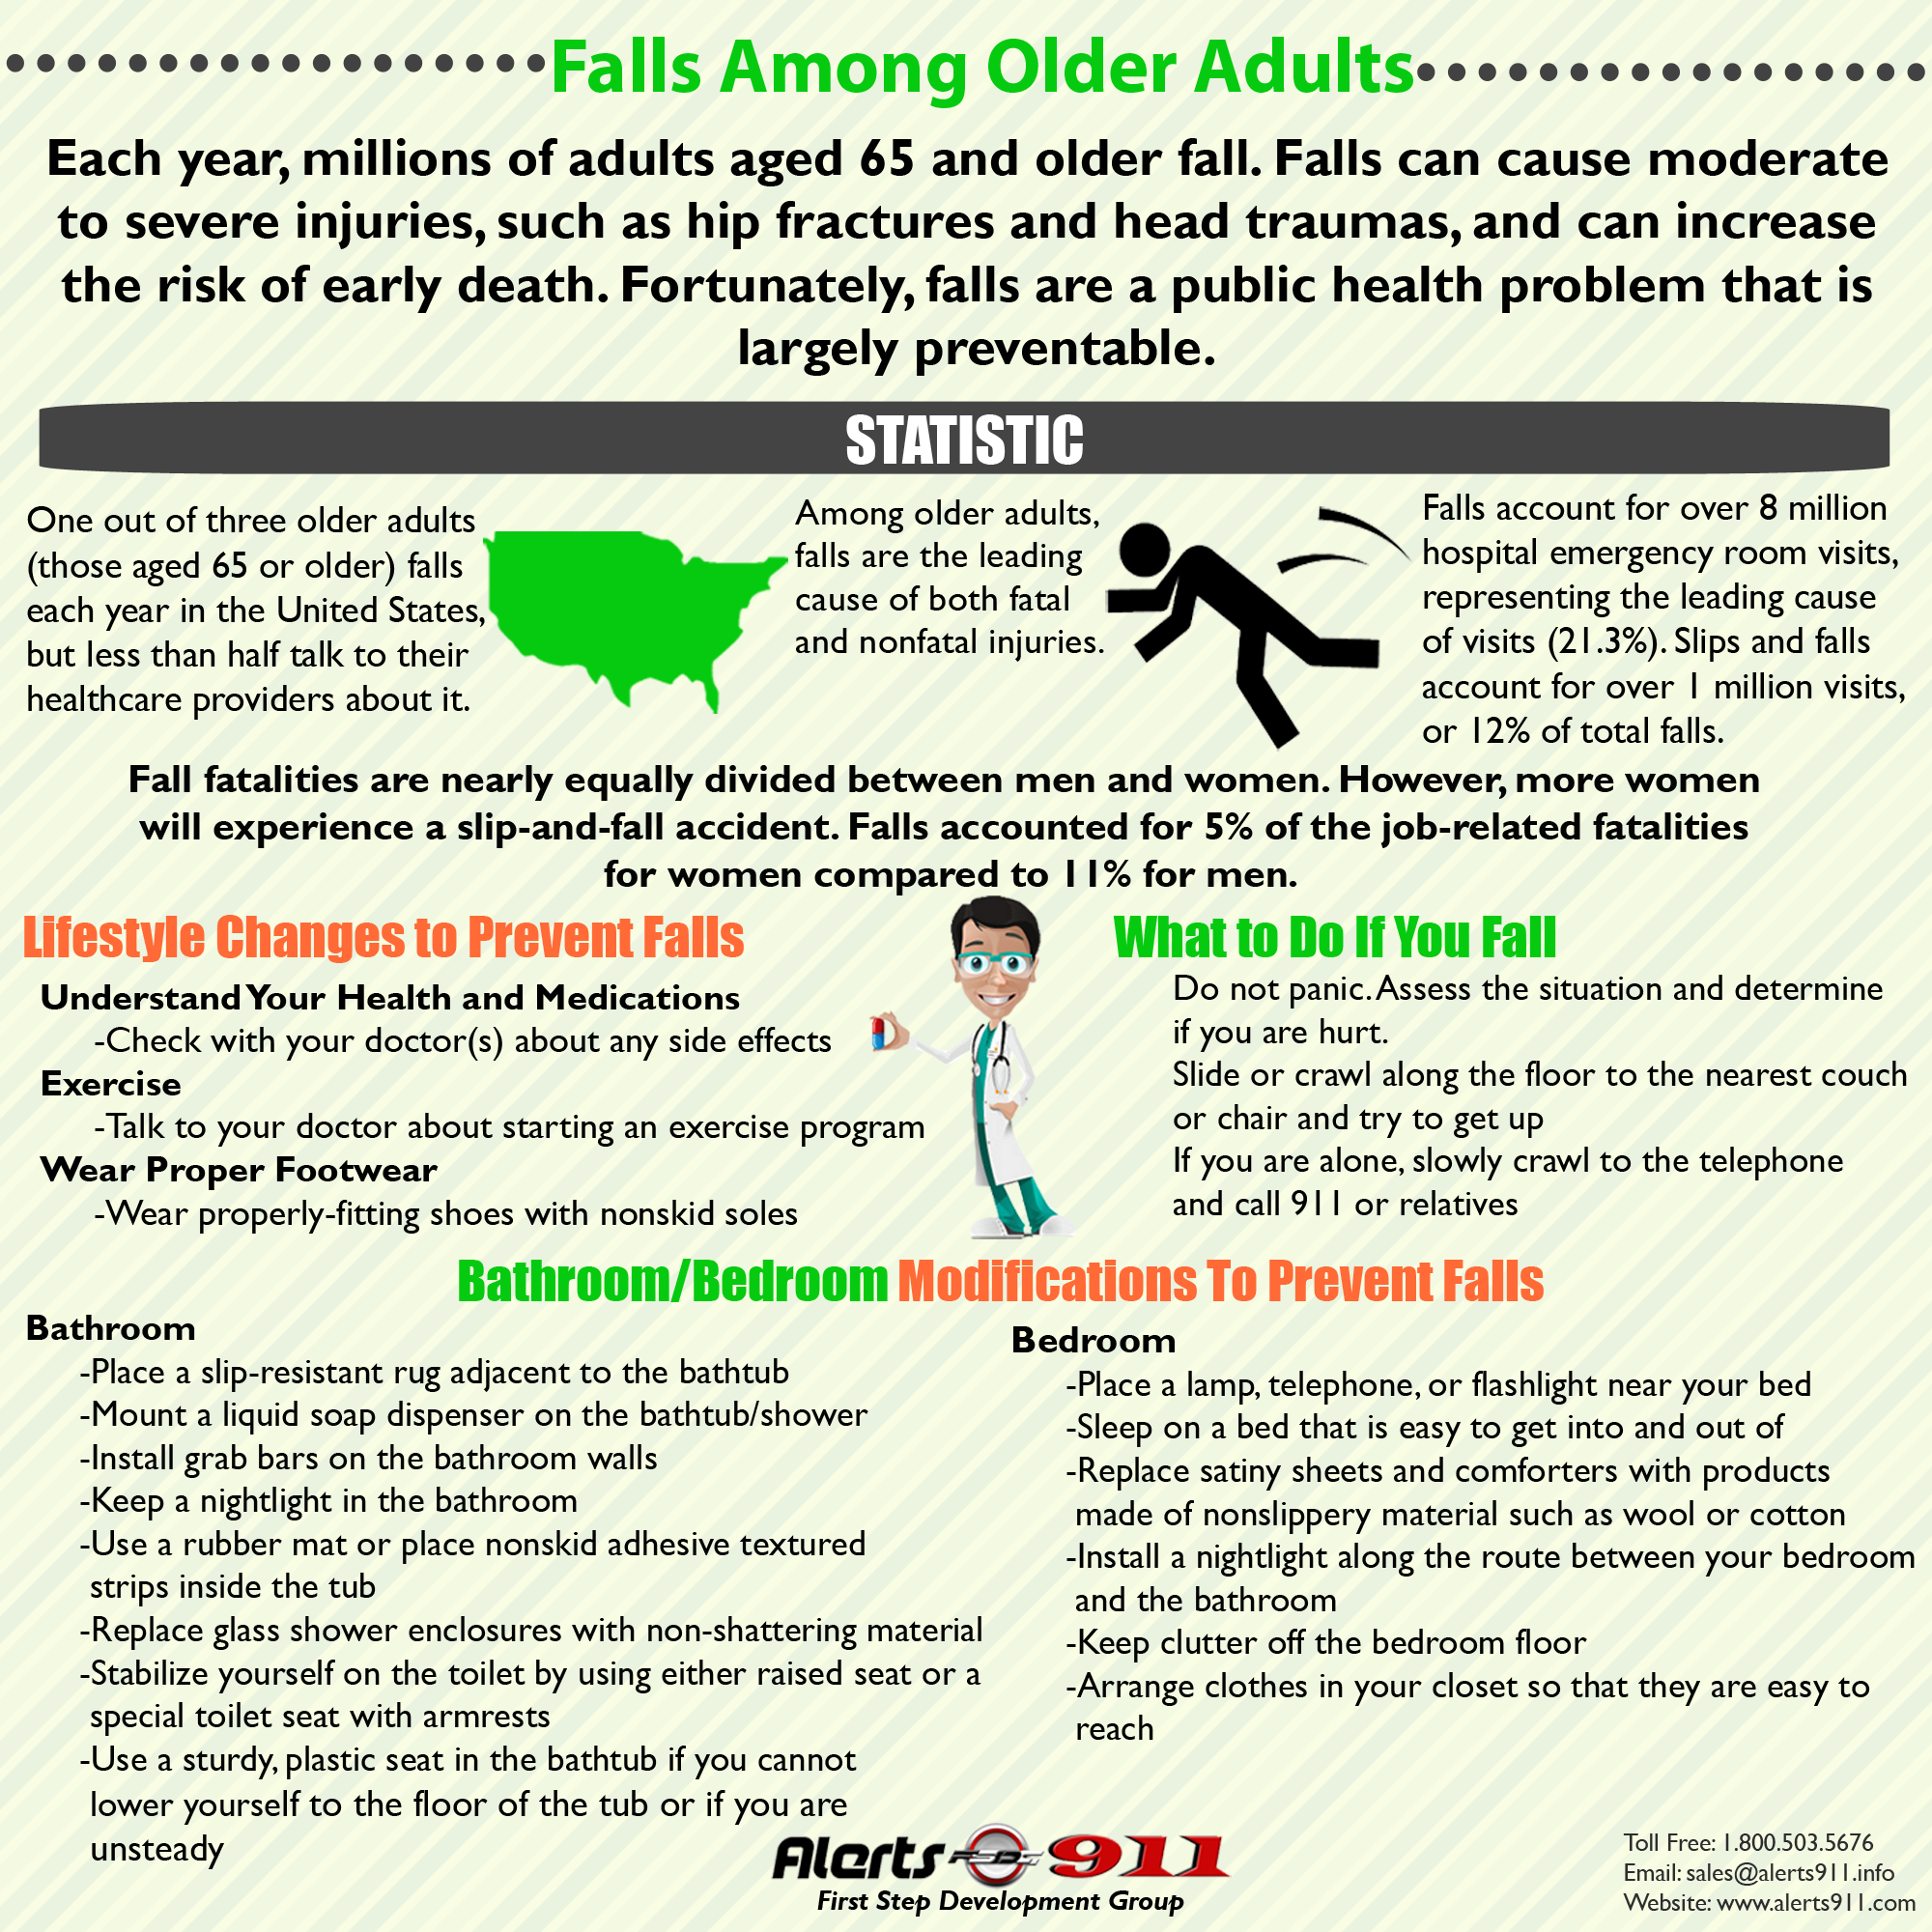 Falls-prevention, elderly adults, senior living, first step development group, alerts911, safety, security, personal emergency response systems